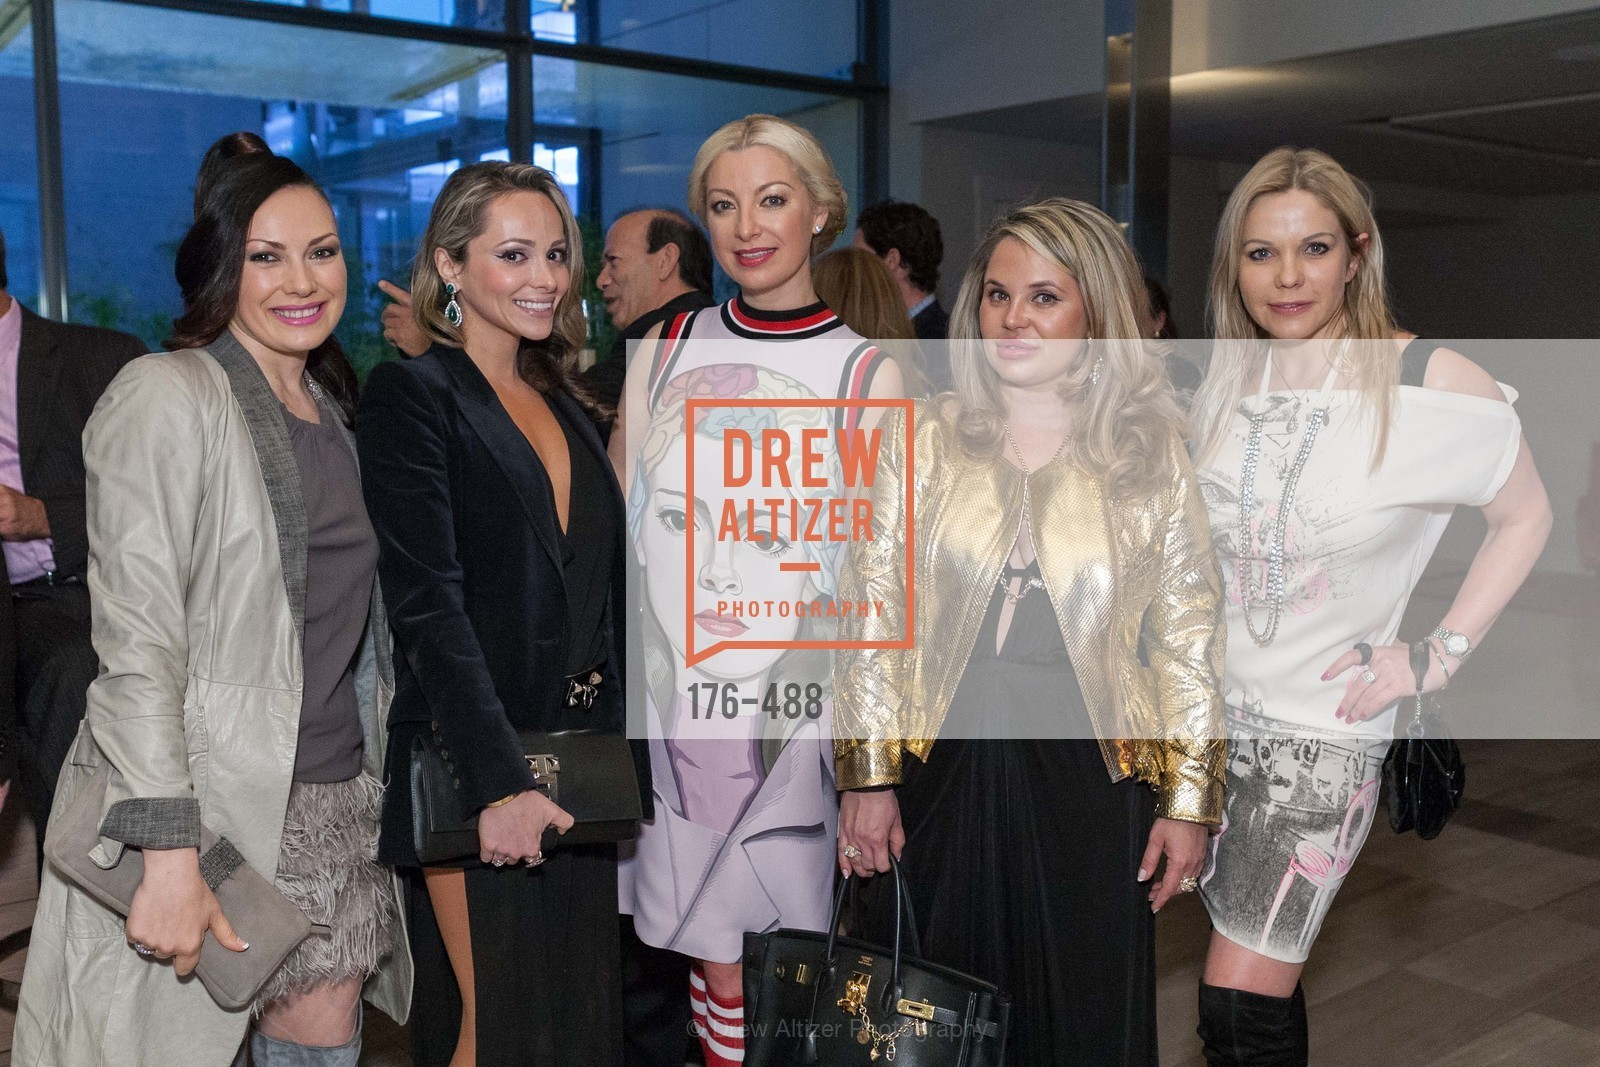 Anna Gemma, Nonna Bolsson, Sonya Molodetskaya, Rada Katz, Tatiana Takaeva, SONYA MOLODETSKAYA's Birthday Party, US. The Battery Penthouse, April 1st, 2014,Drew Altizer, Drew Altizer Photography, full-service agency, private events, San Francisco photographer, photographer california